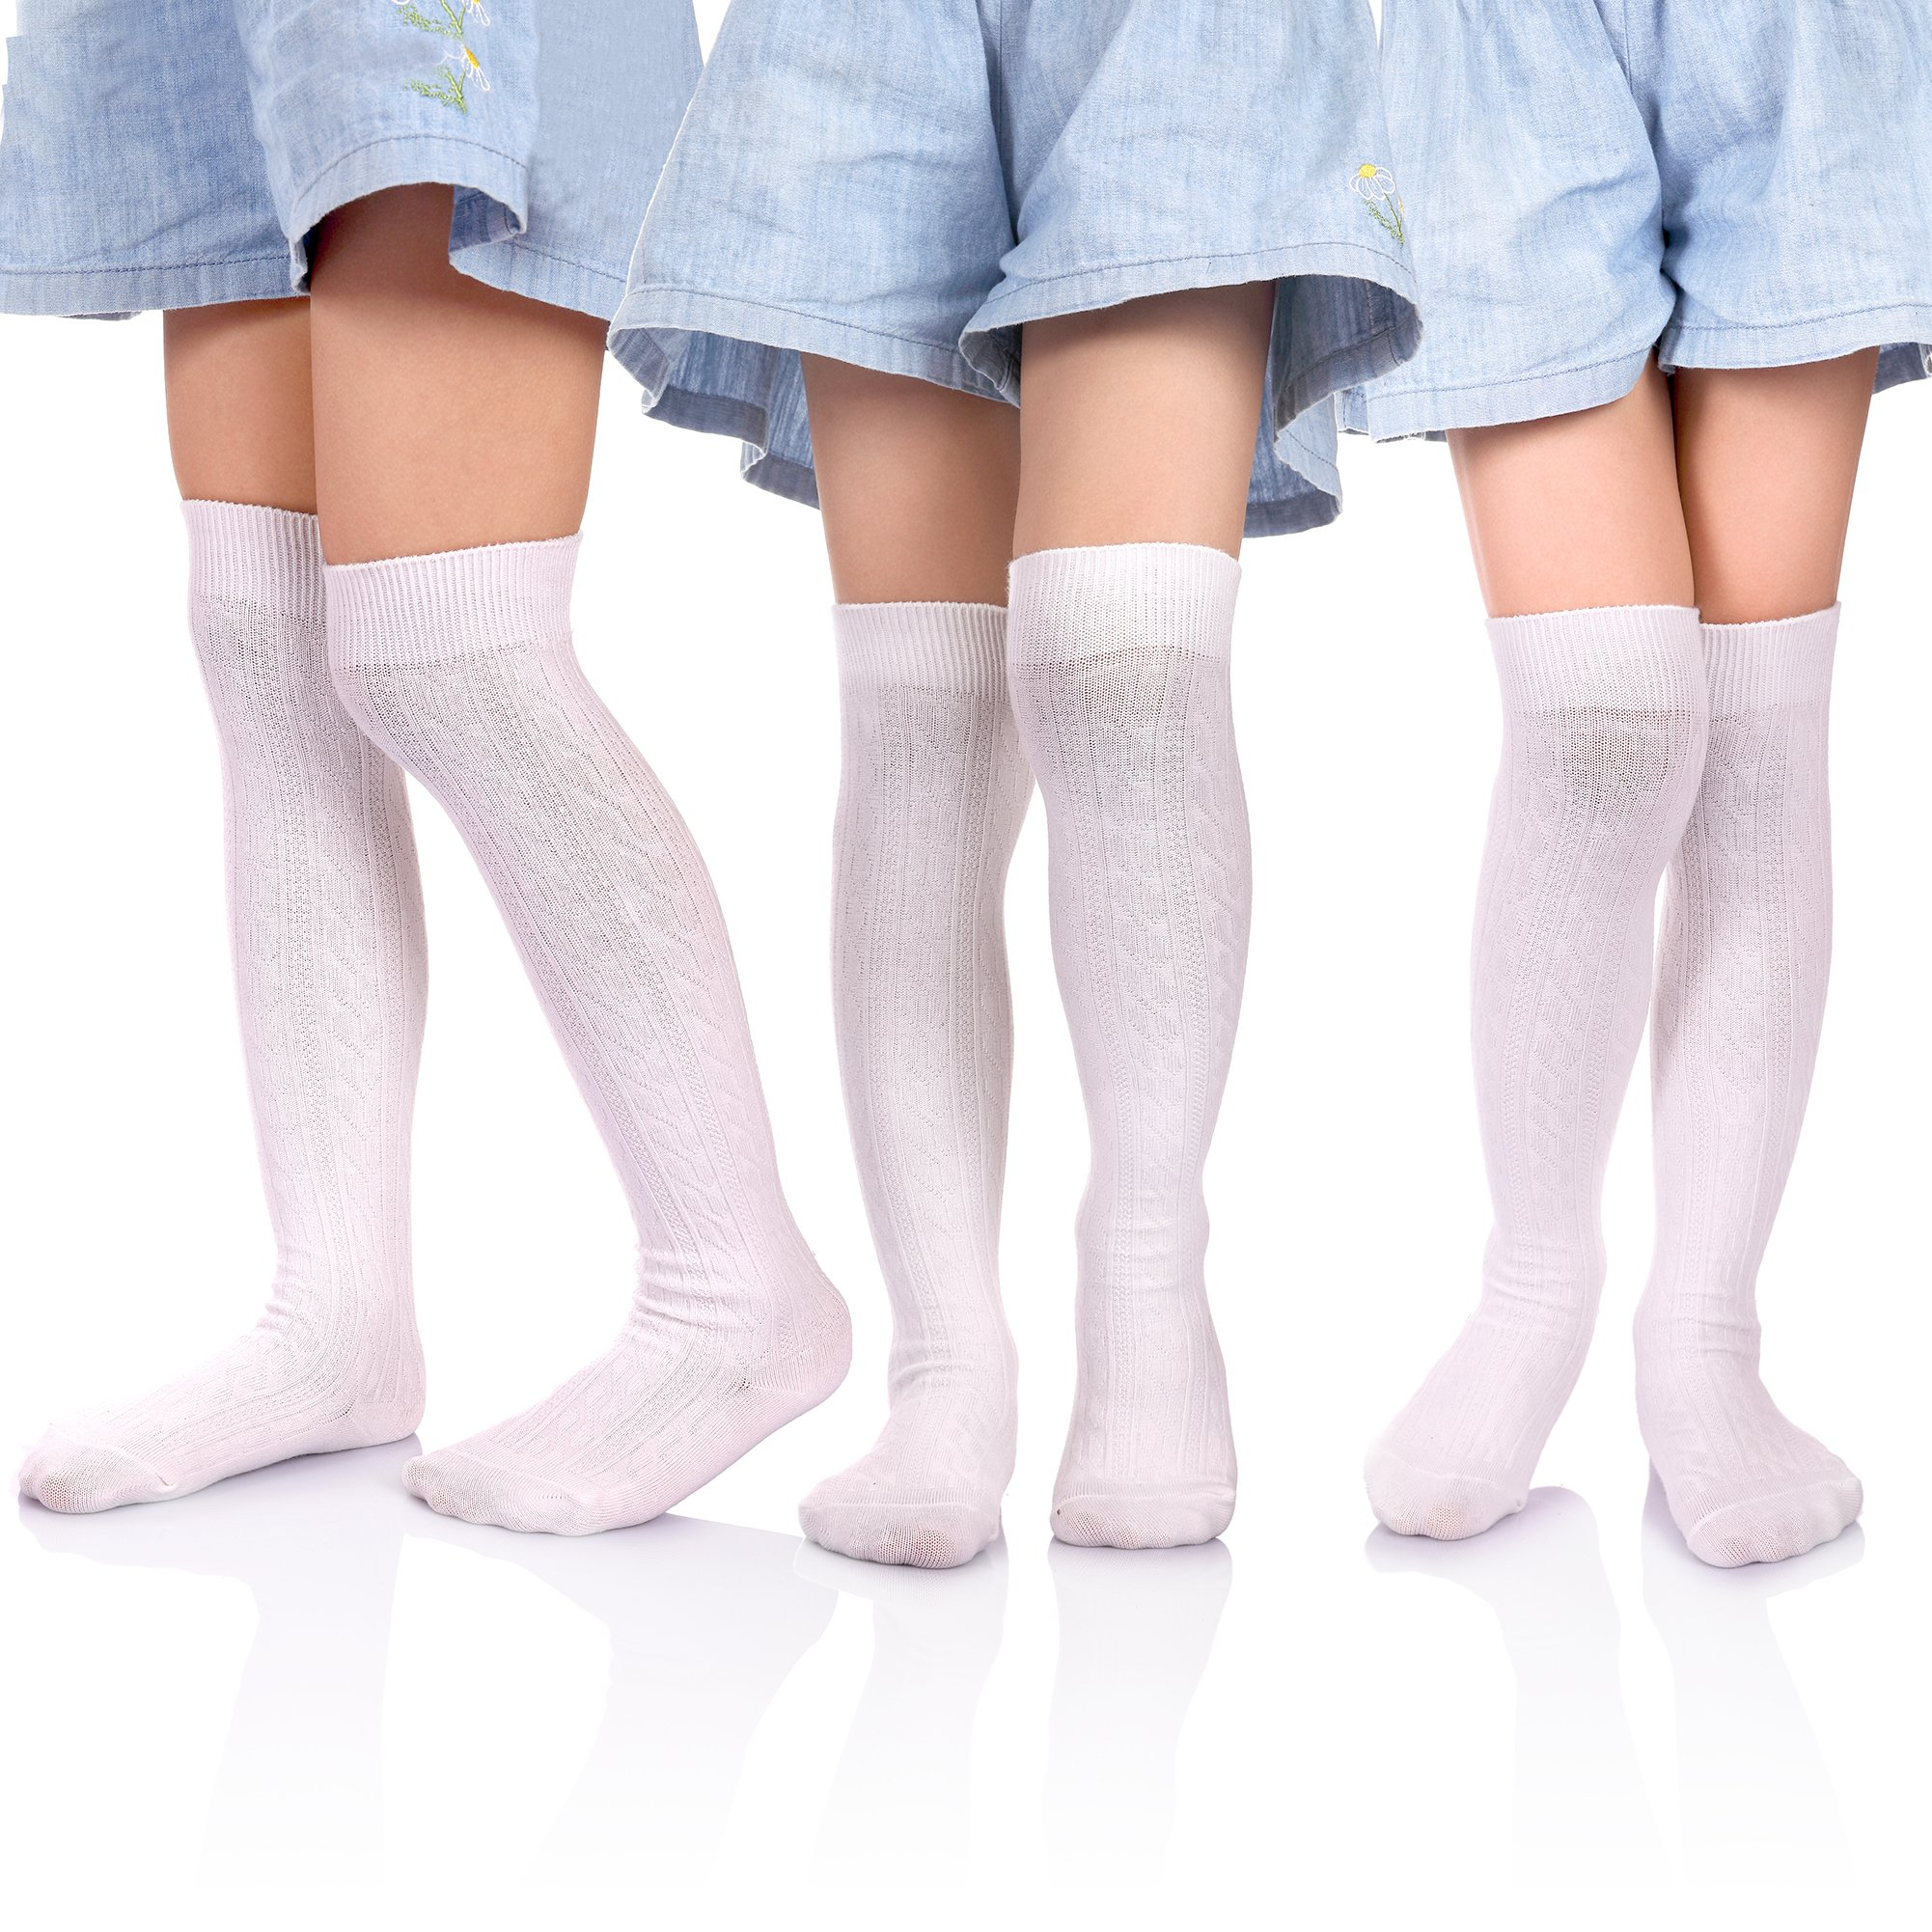 HERHILLY School Uniform Classic Cable Cotton Over Knee-high Socks for Big Girls Solid Colors Stylish Boot Socks 3 Pack (3-5 Year old, 3 Pack White)